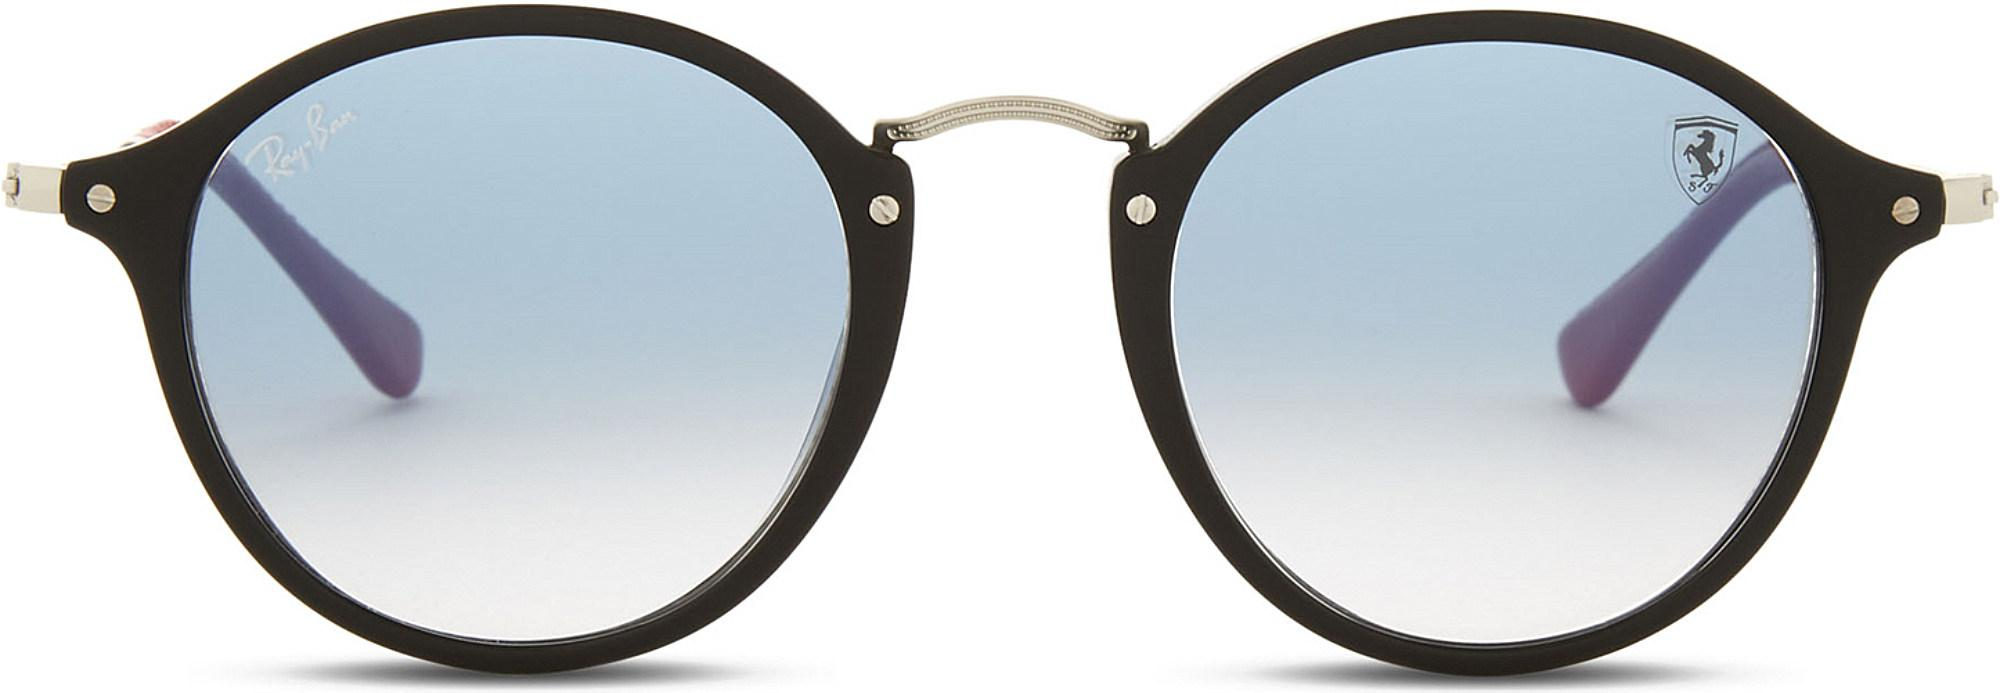 7cccb709eb Ray-Ban Rb2447 Round-frame Sunglasses in Black - Lyst